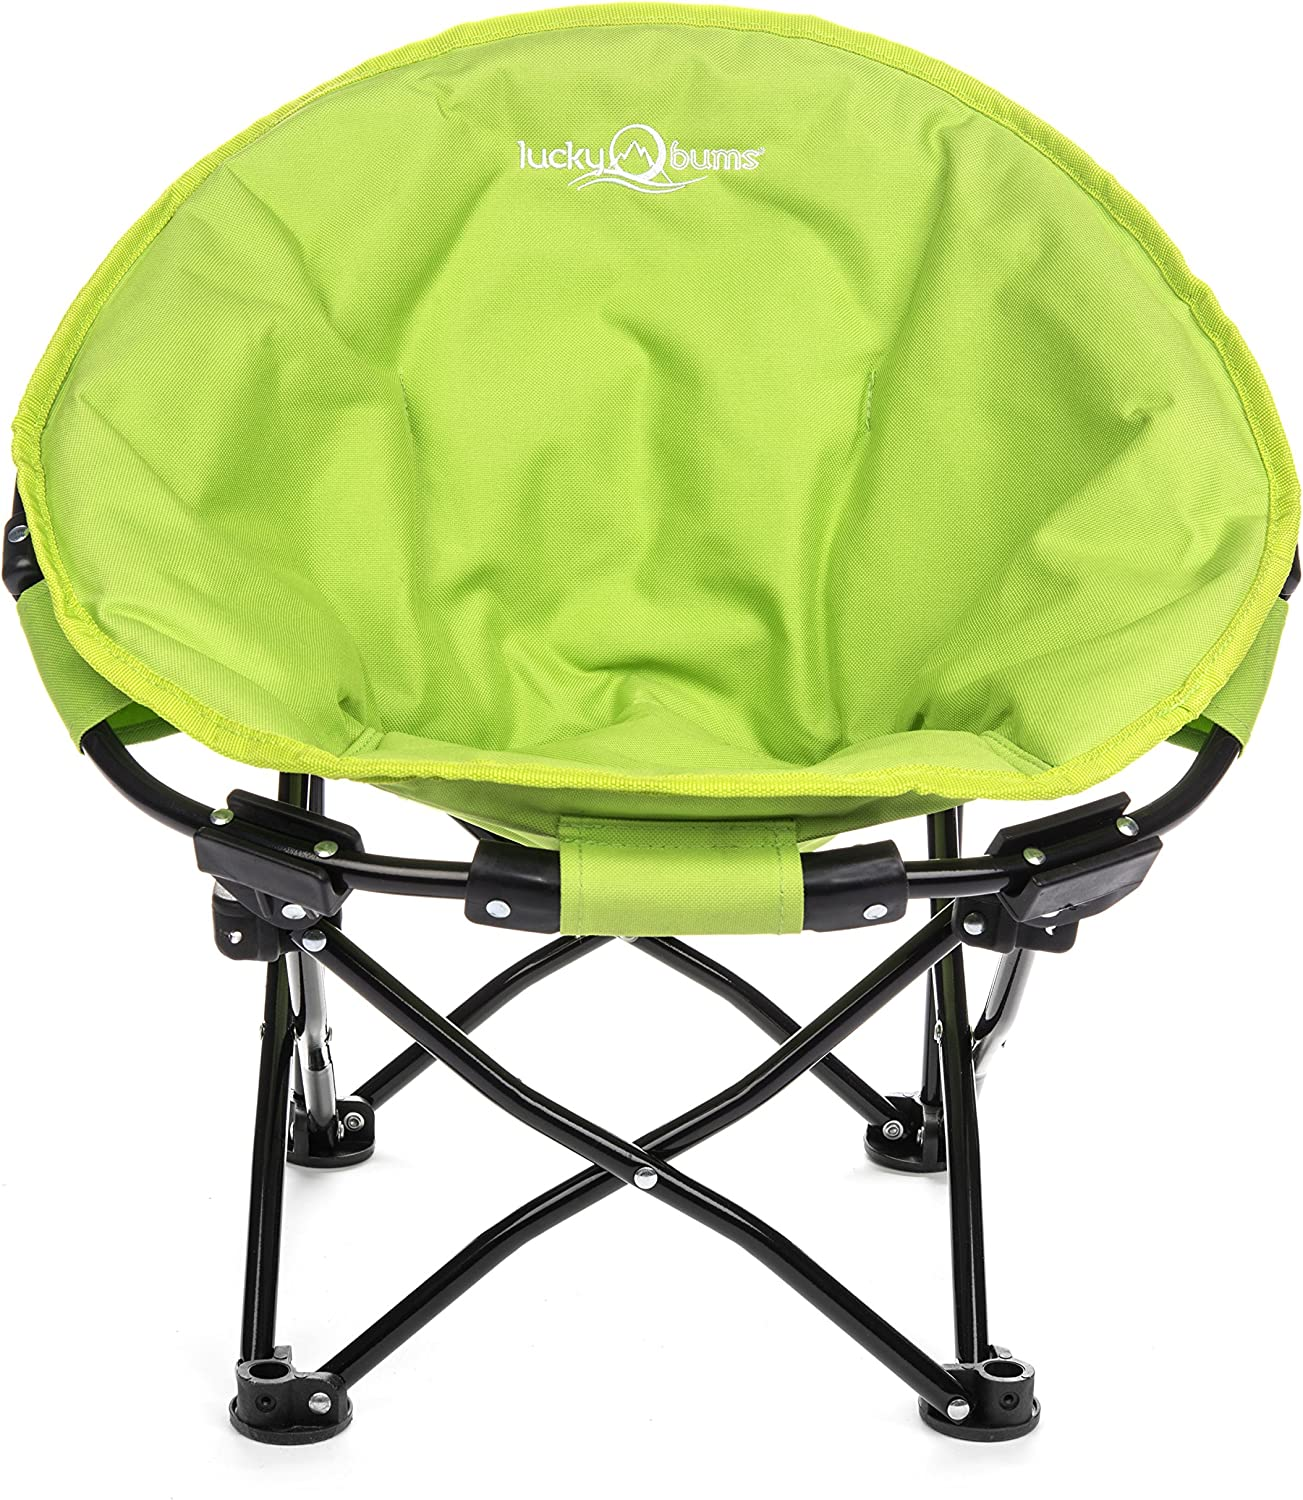 Lucky Bums Moon Camp Adult Indoor Outdoor Comfort Lightweight Durable Chair with Carrying Case